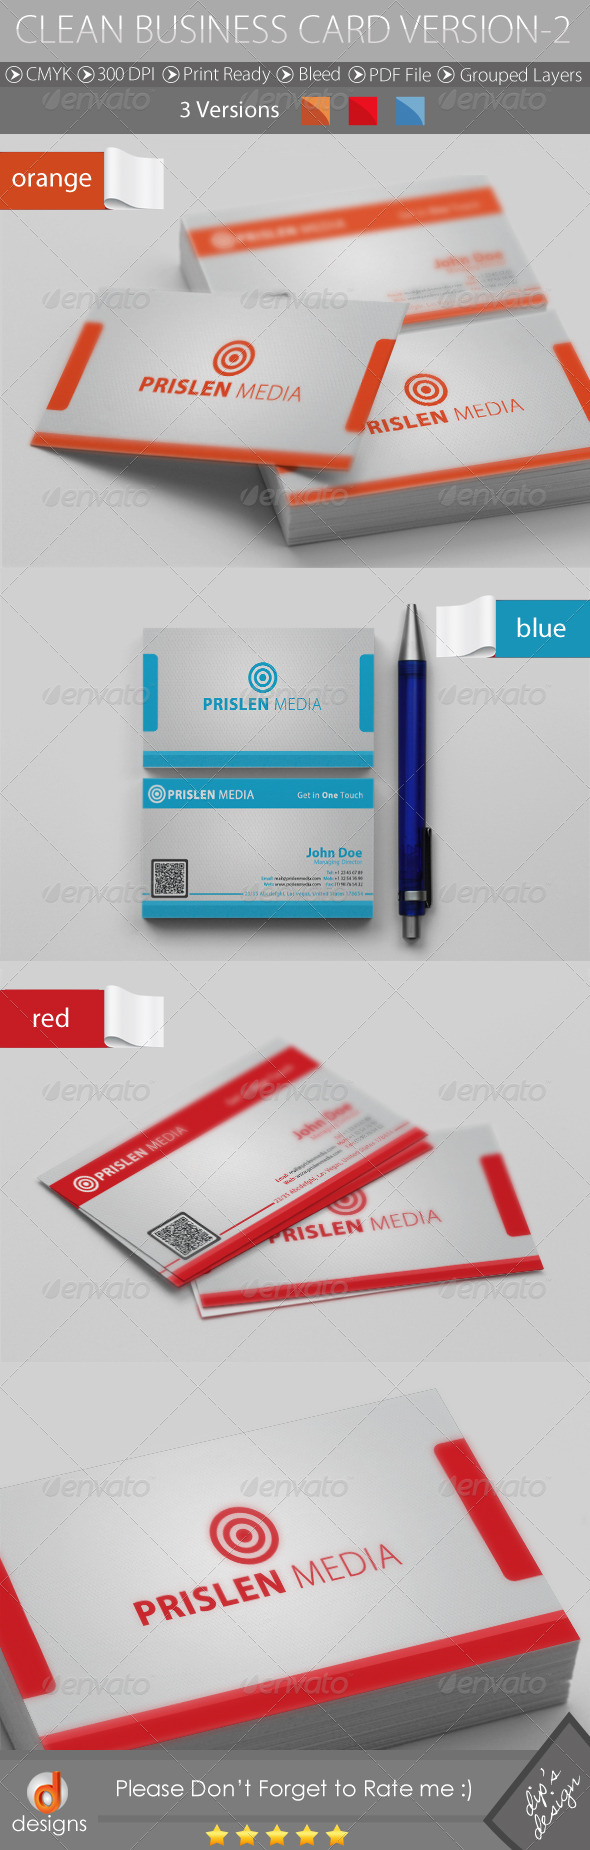 GraphicRiver CLEAN BUSINESS CARD VERSION-2 4656692